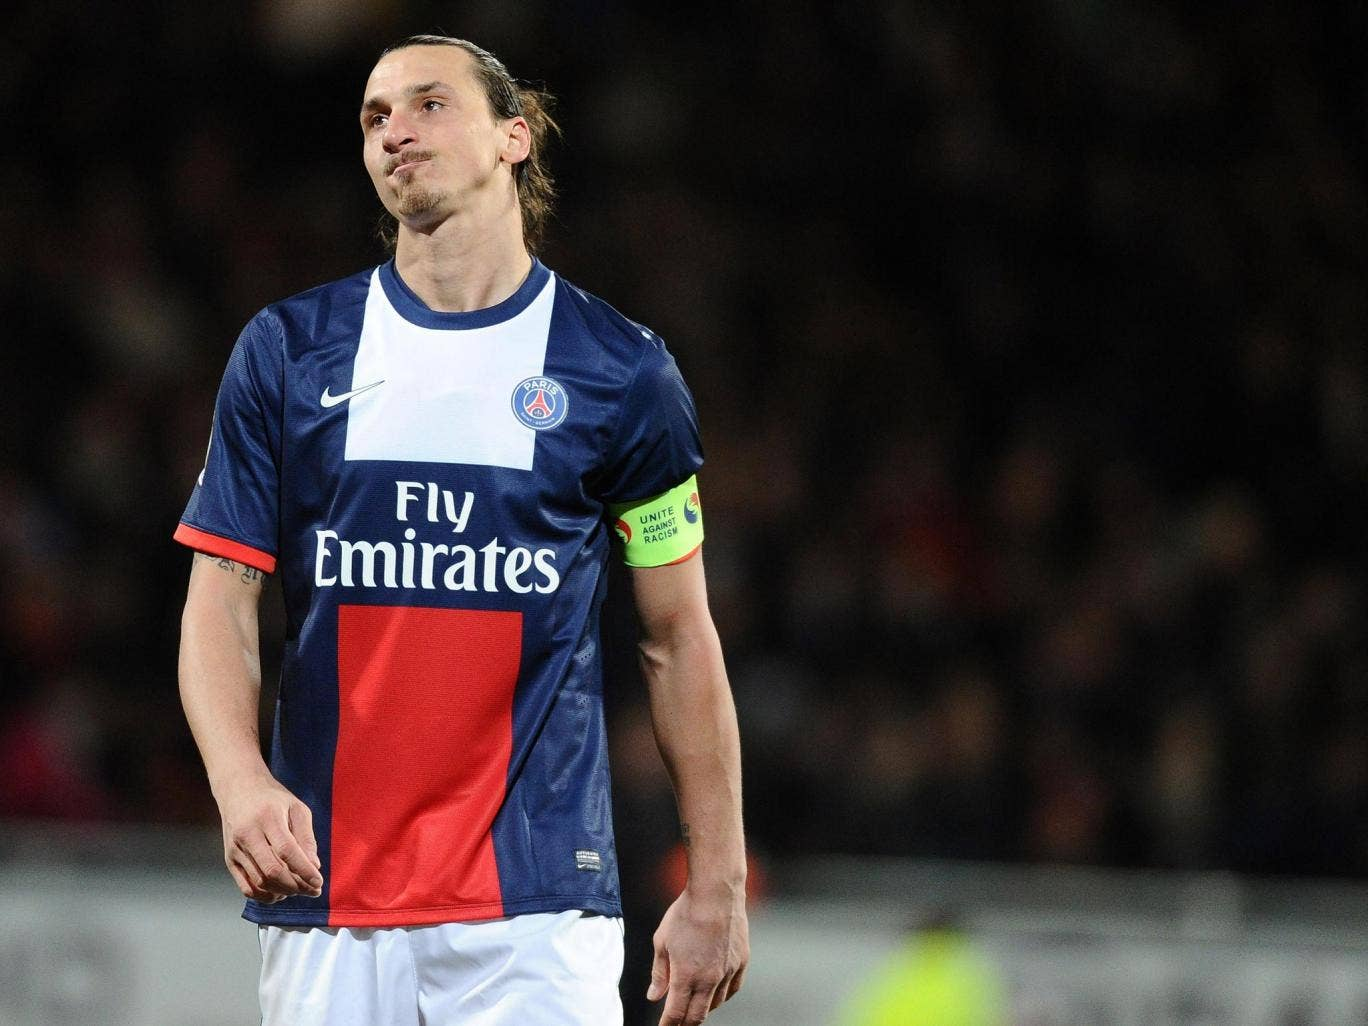 QPR are said to have turned down the chance to sign Zlatan Ibrahimovic when he was 16